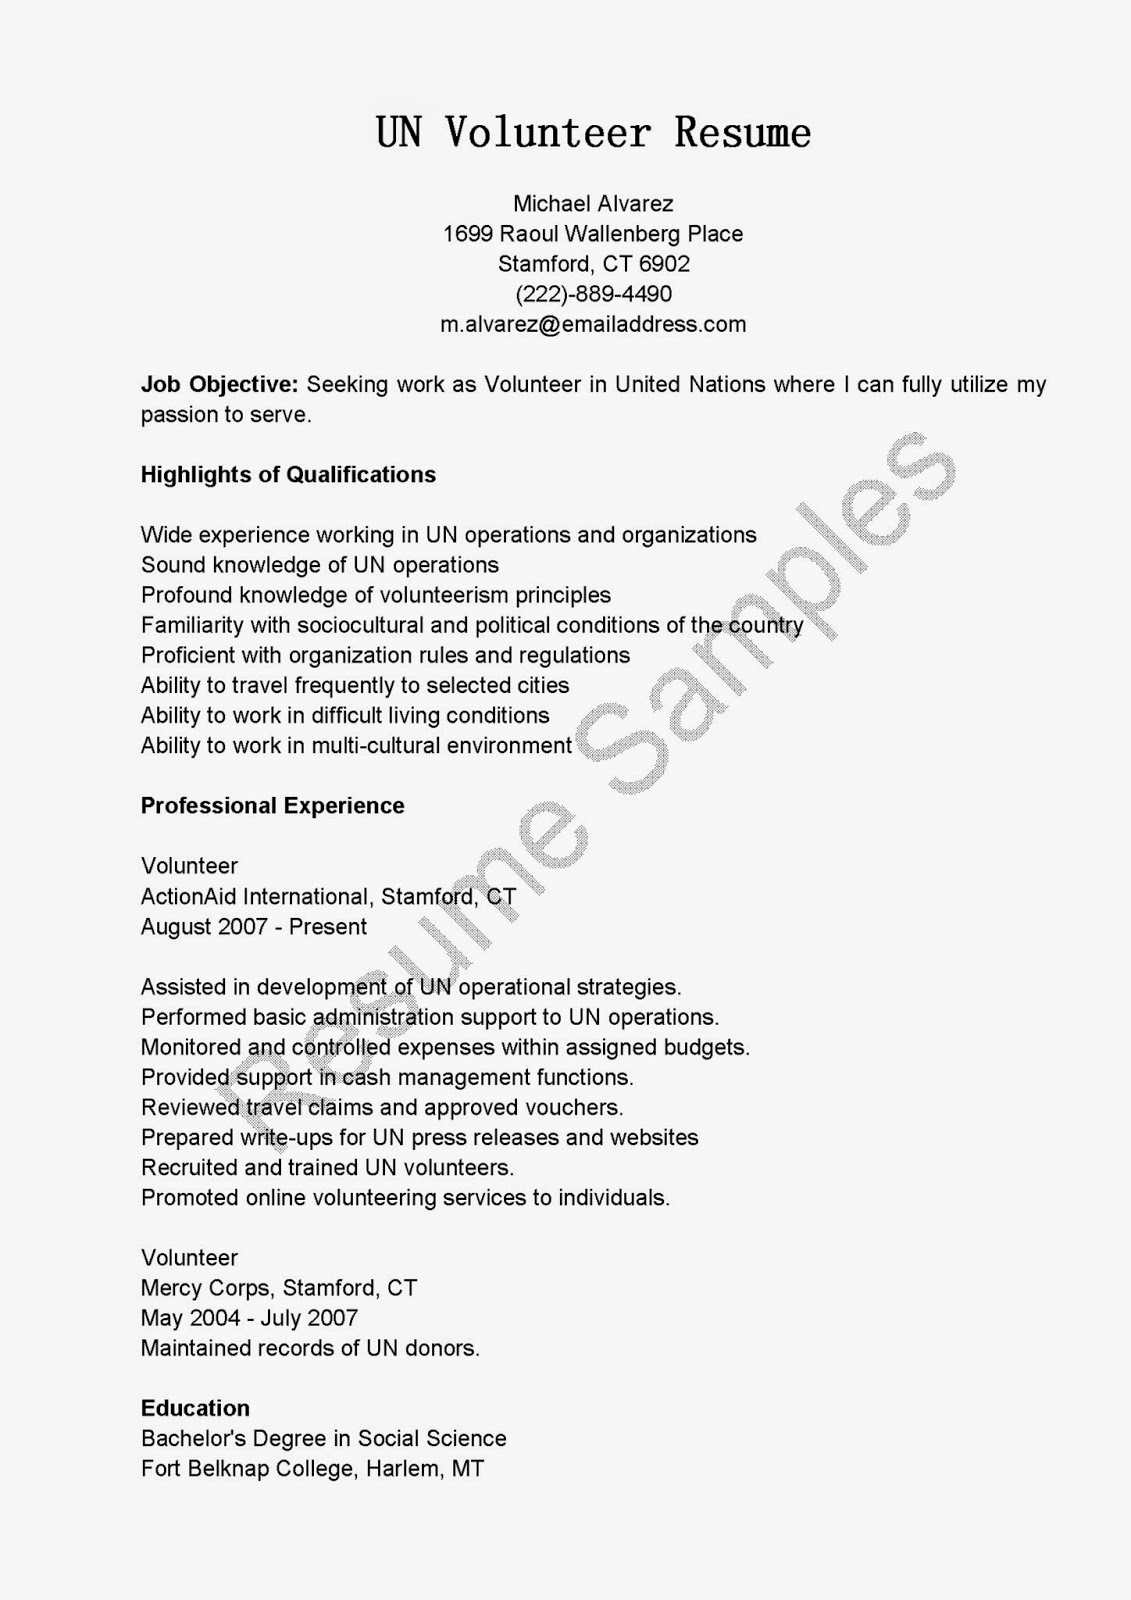 resume samples  un volunteer resume sample